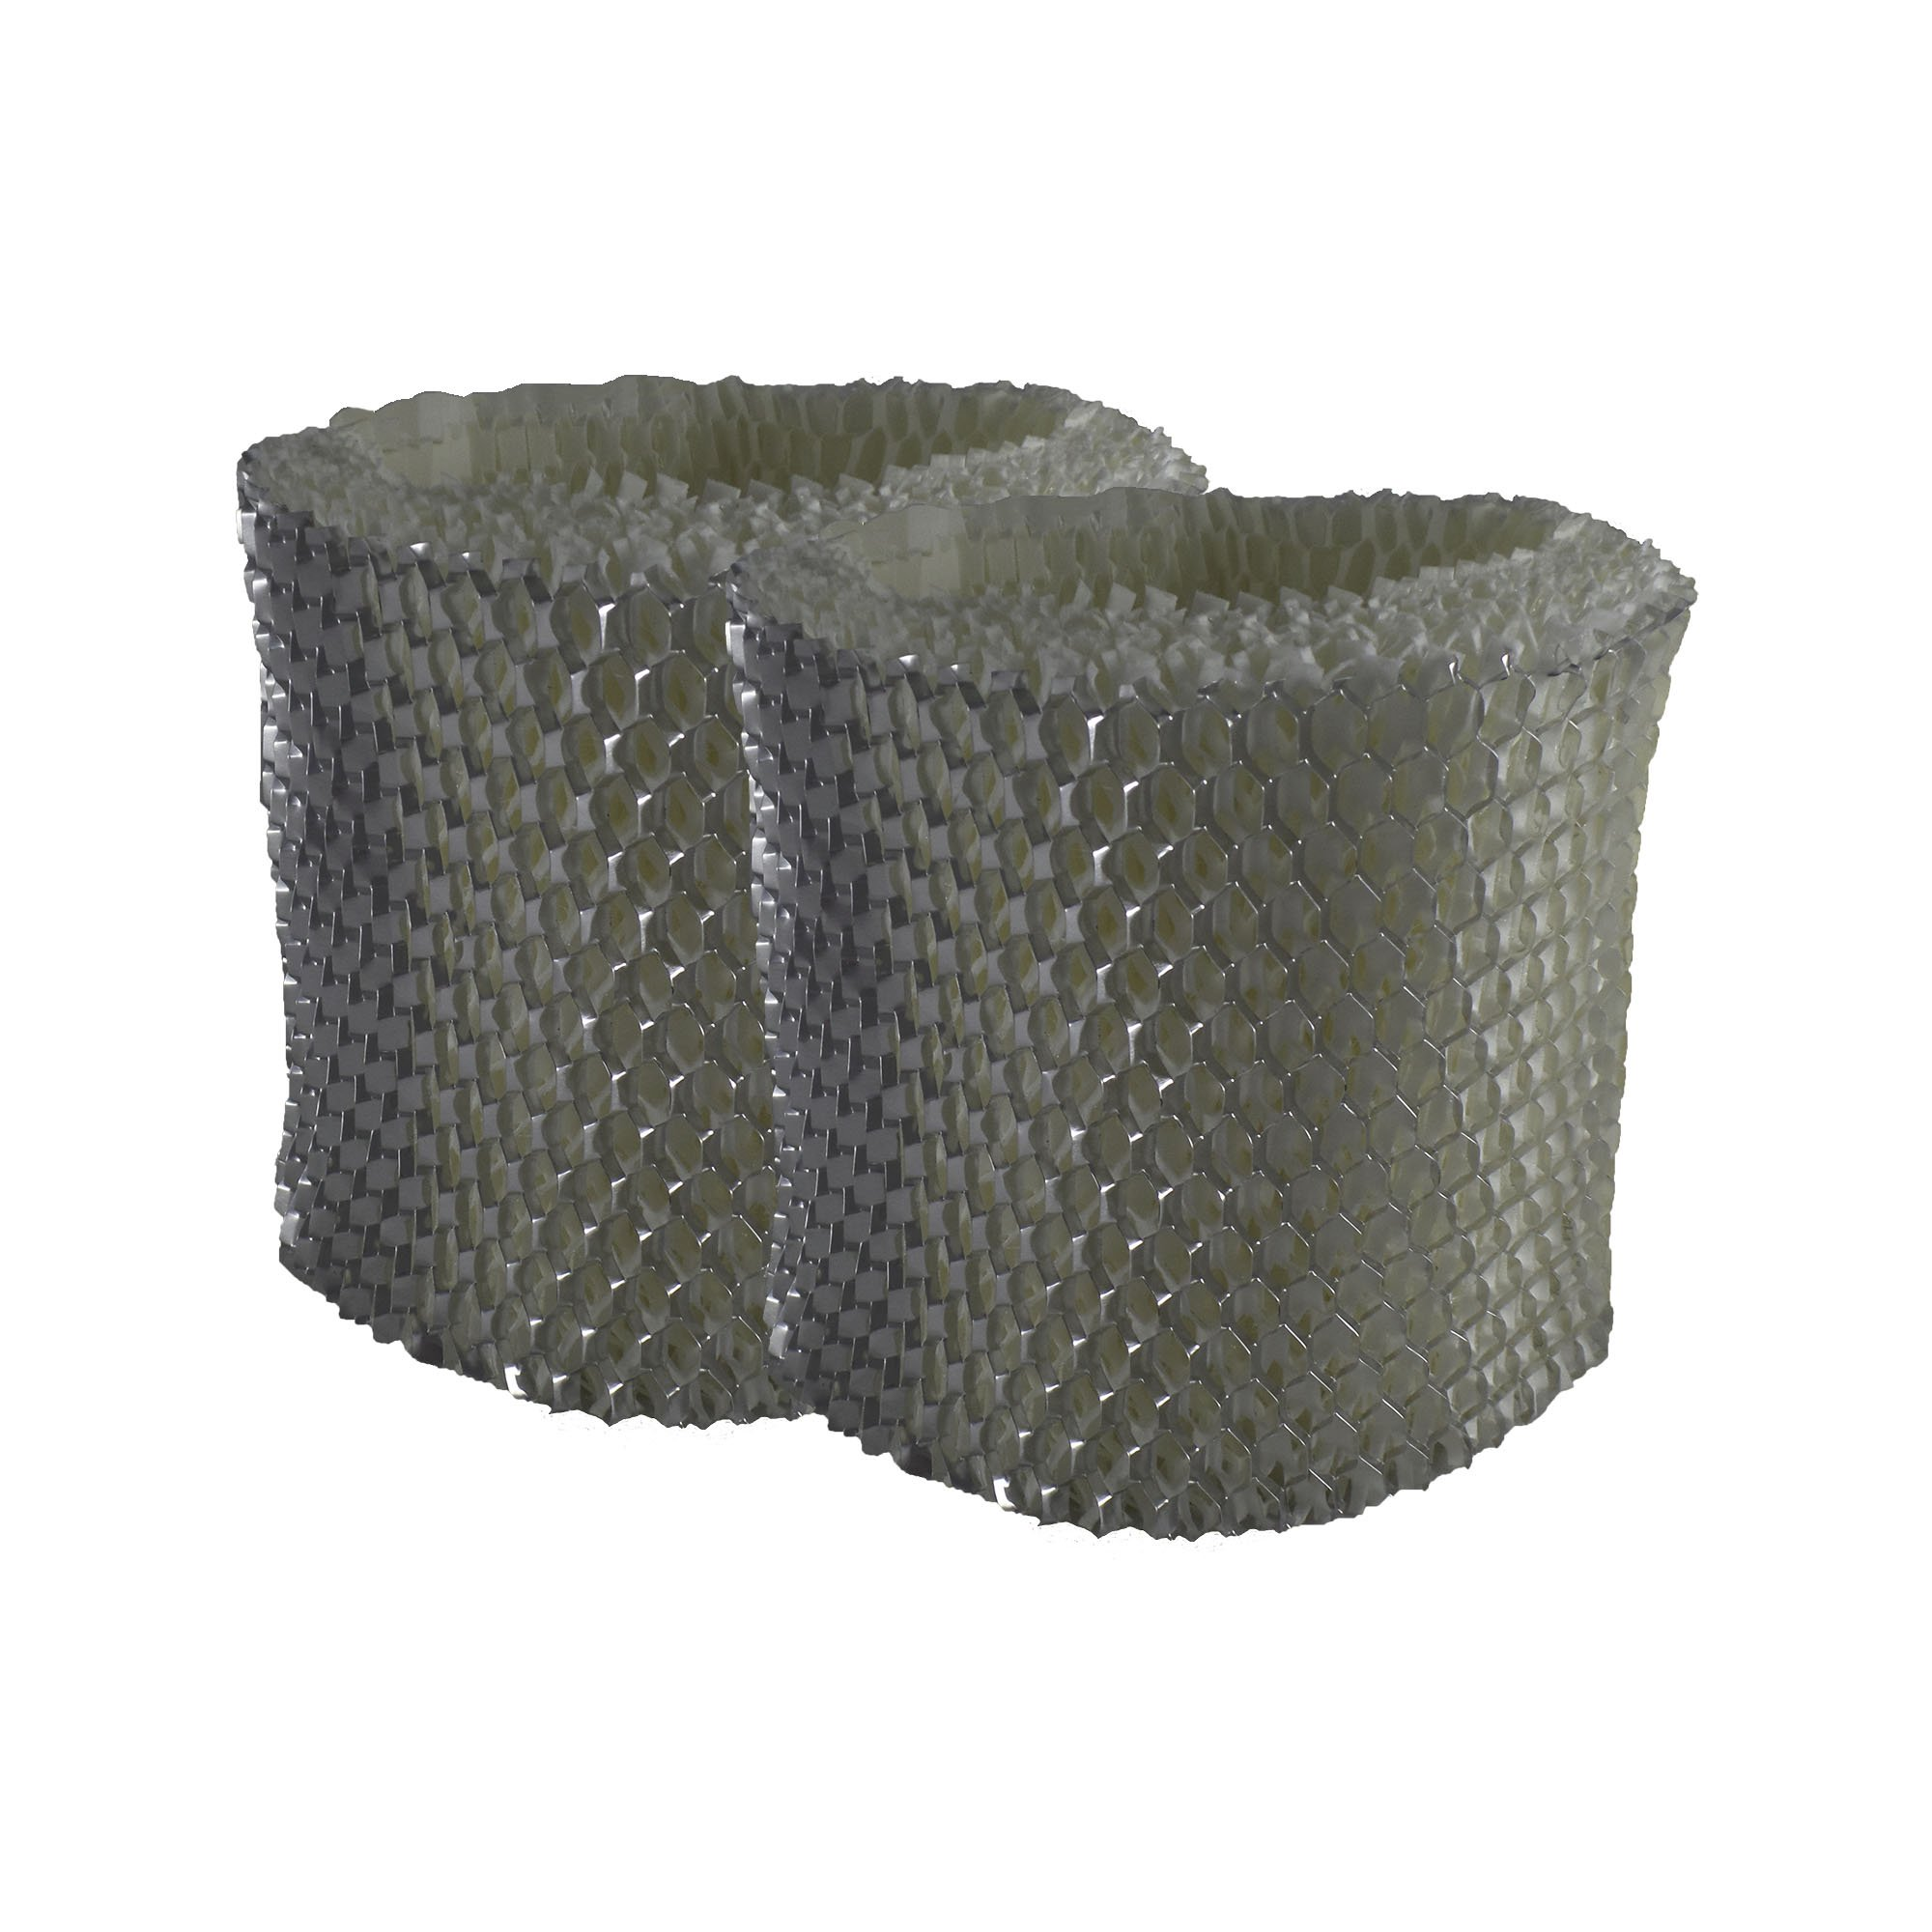 Air Filter Factory 2-PACK Compatible Replacement For Honeywell HCM890, HCM890B, HCM890C, HCM-890-20 Humidifier Filter